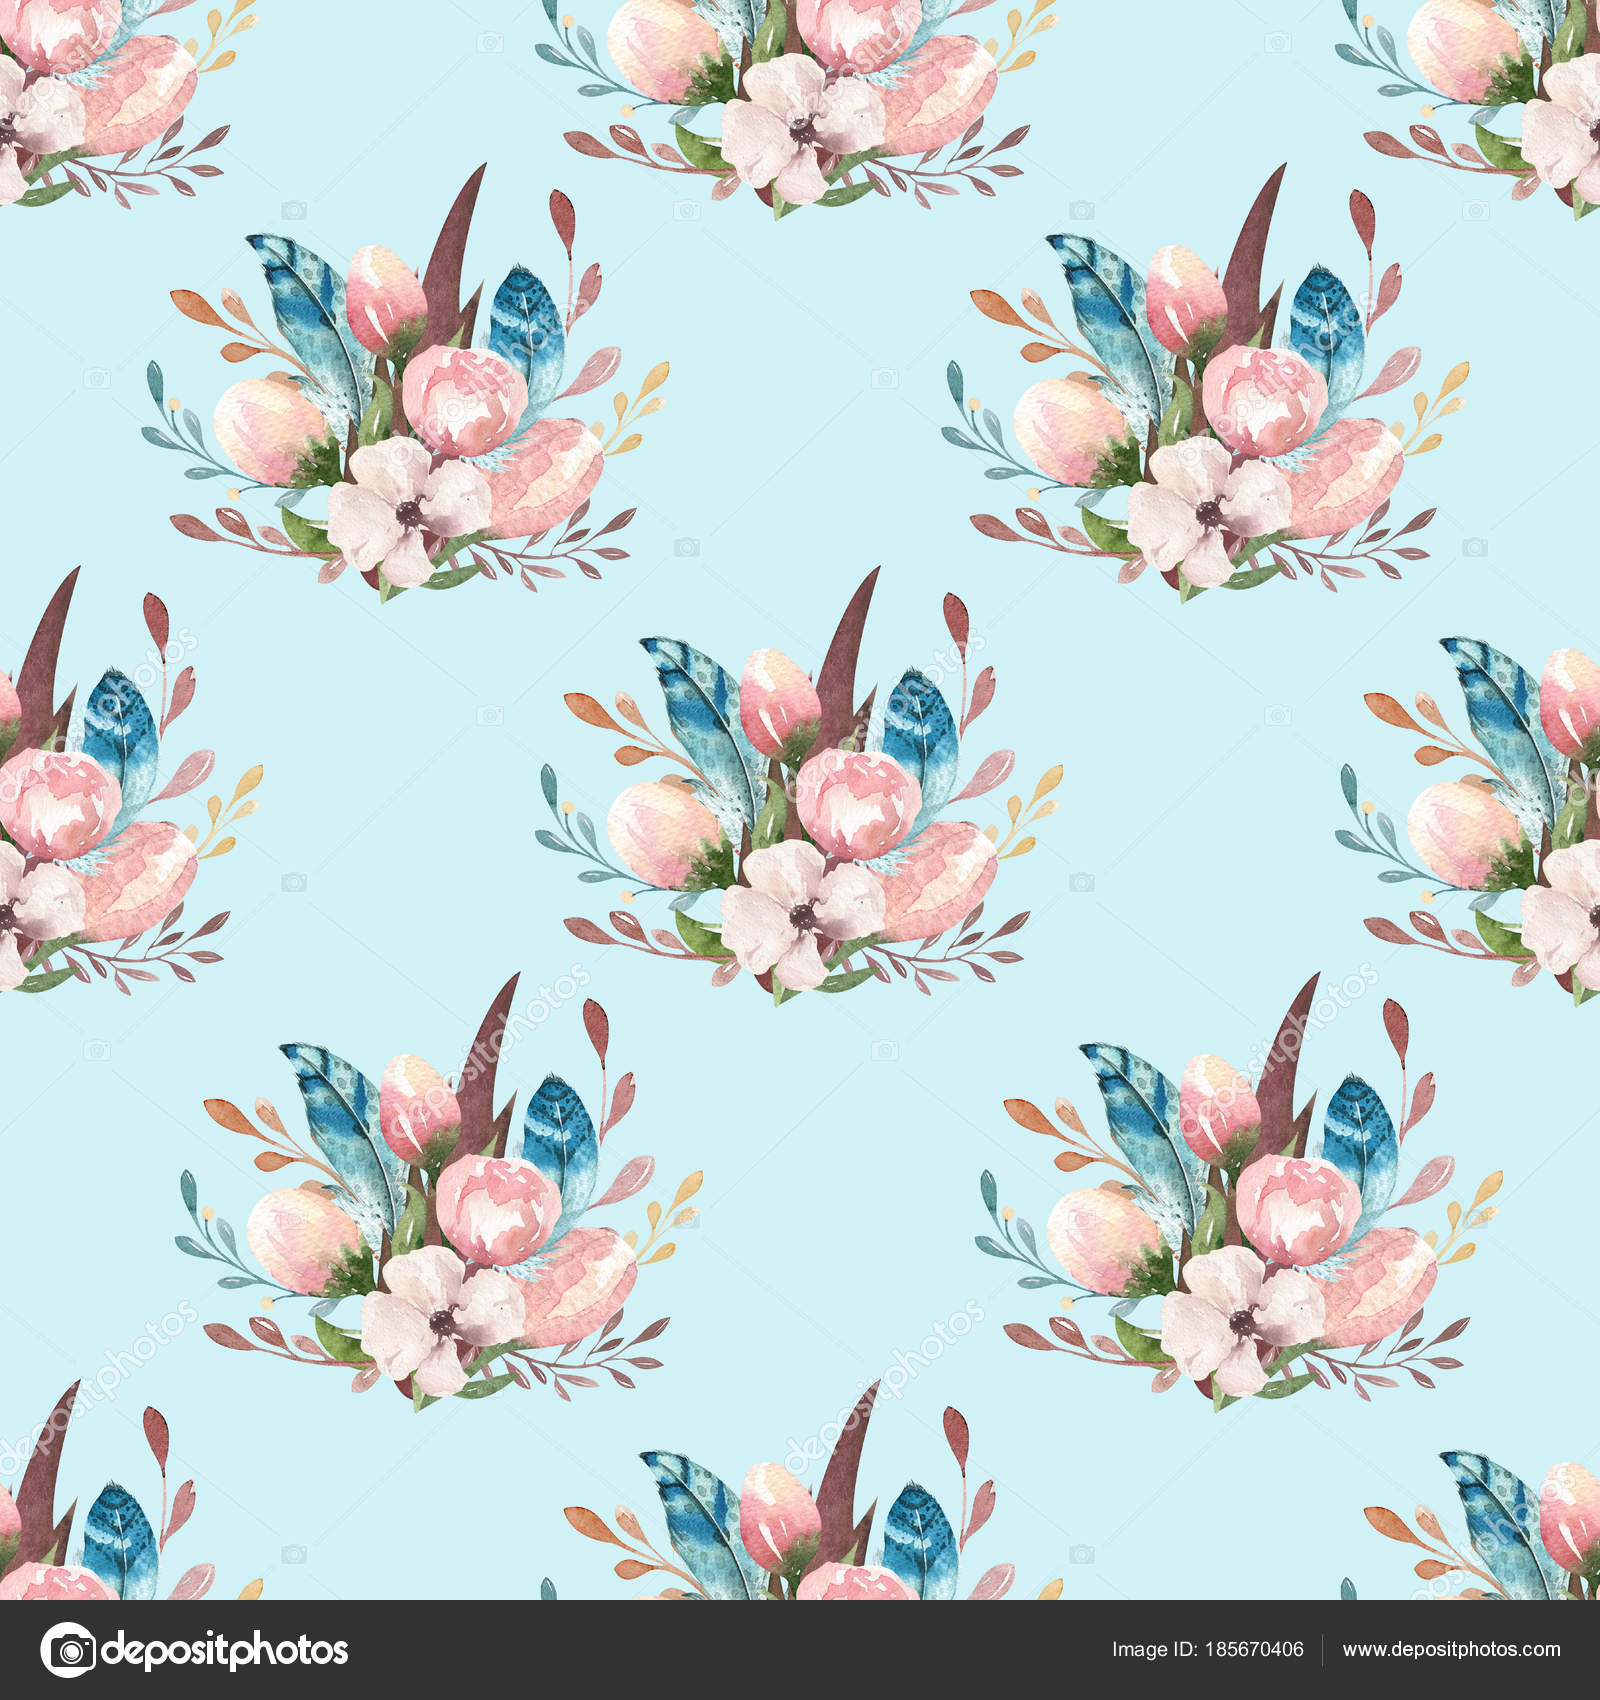 Seamless Boho Watercolor Wallpaper With Blossom Flowers And Leaves